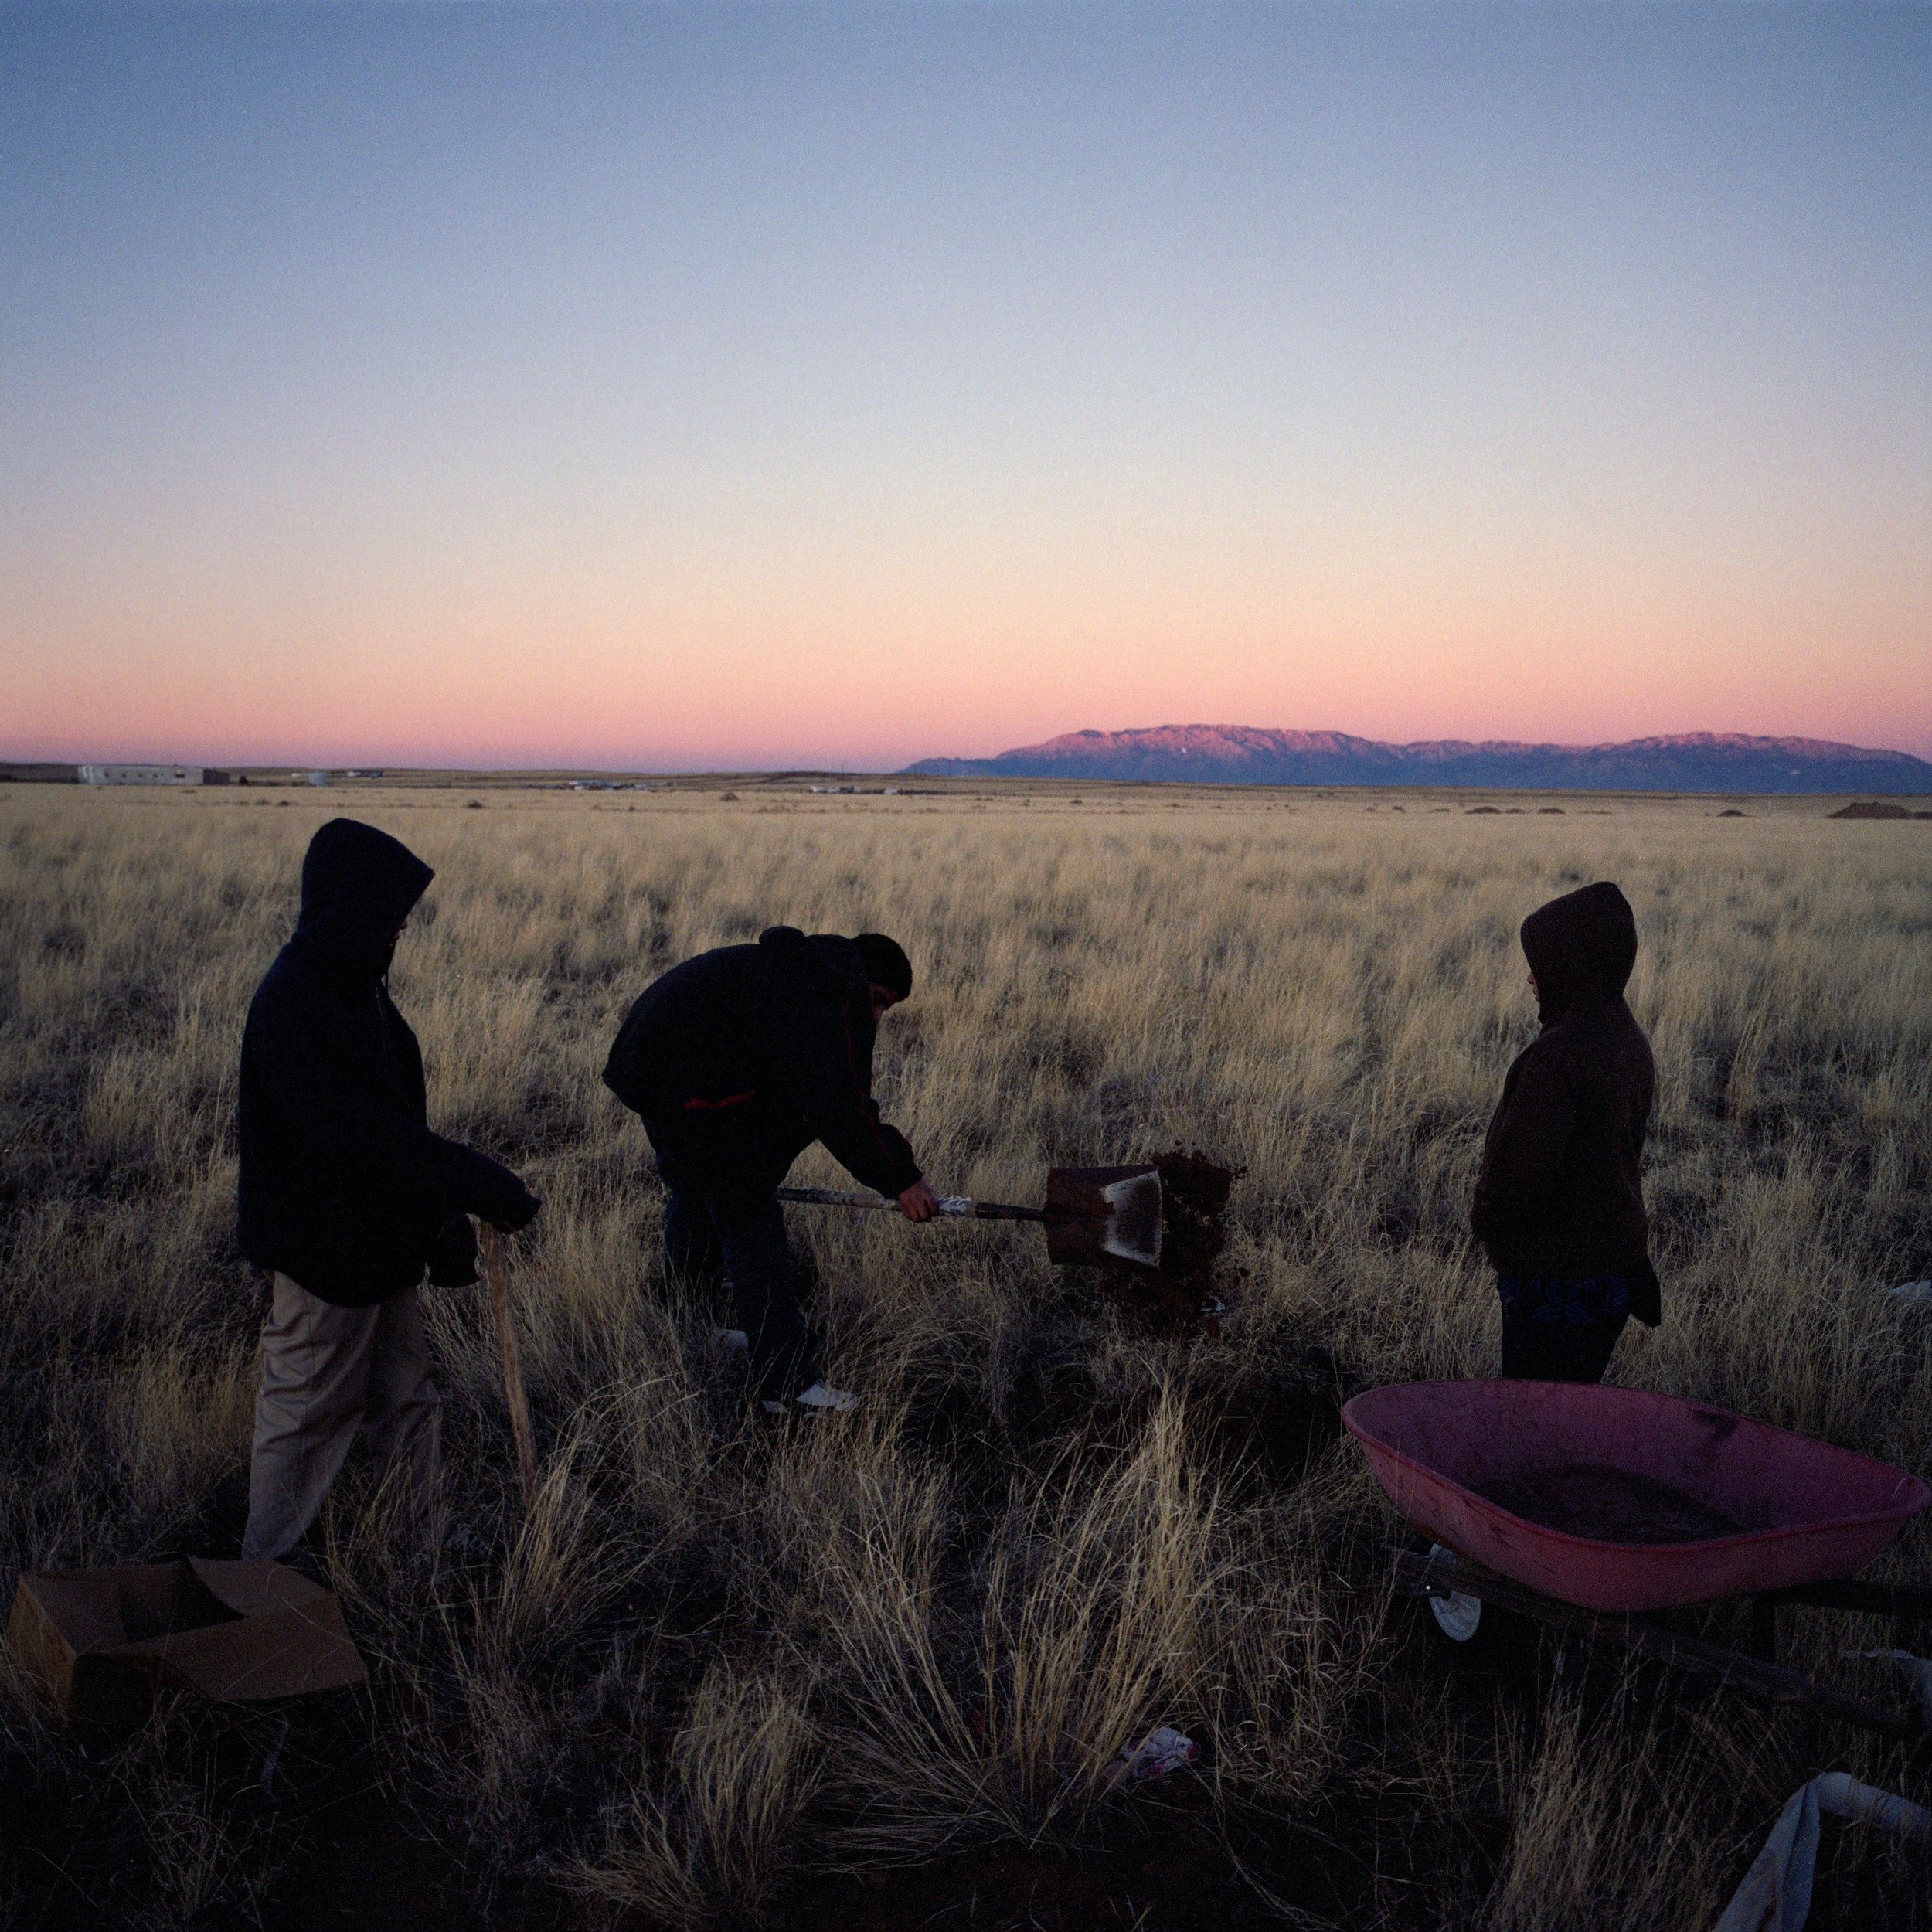 Members of the Alcudia family bury a deceased pet dog outside of their home in Pajarito Mesa, New Mexico, Feb. 9, 2011.